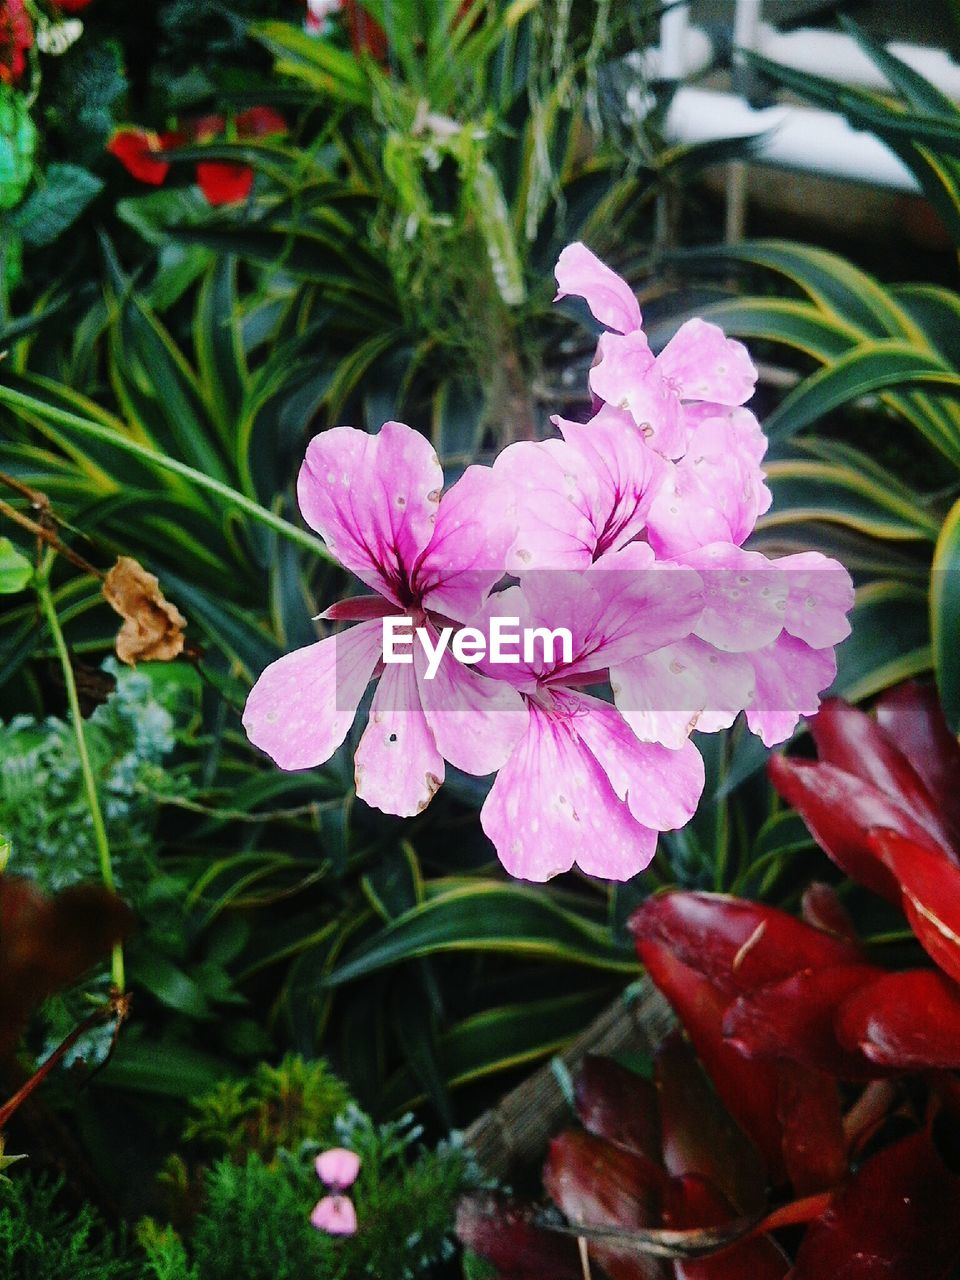 flower, growth, petal, nature, fragility, pink color, beauty in nature, no people, plant, flower head, outdoors, day, freshness, blooming, leaf, close-up, periwinkle